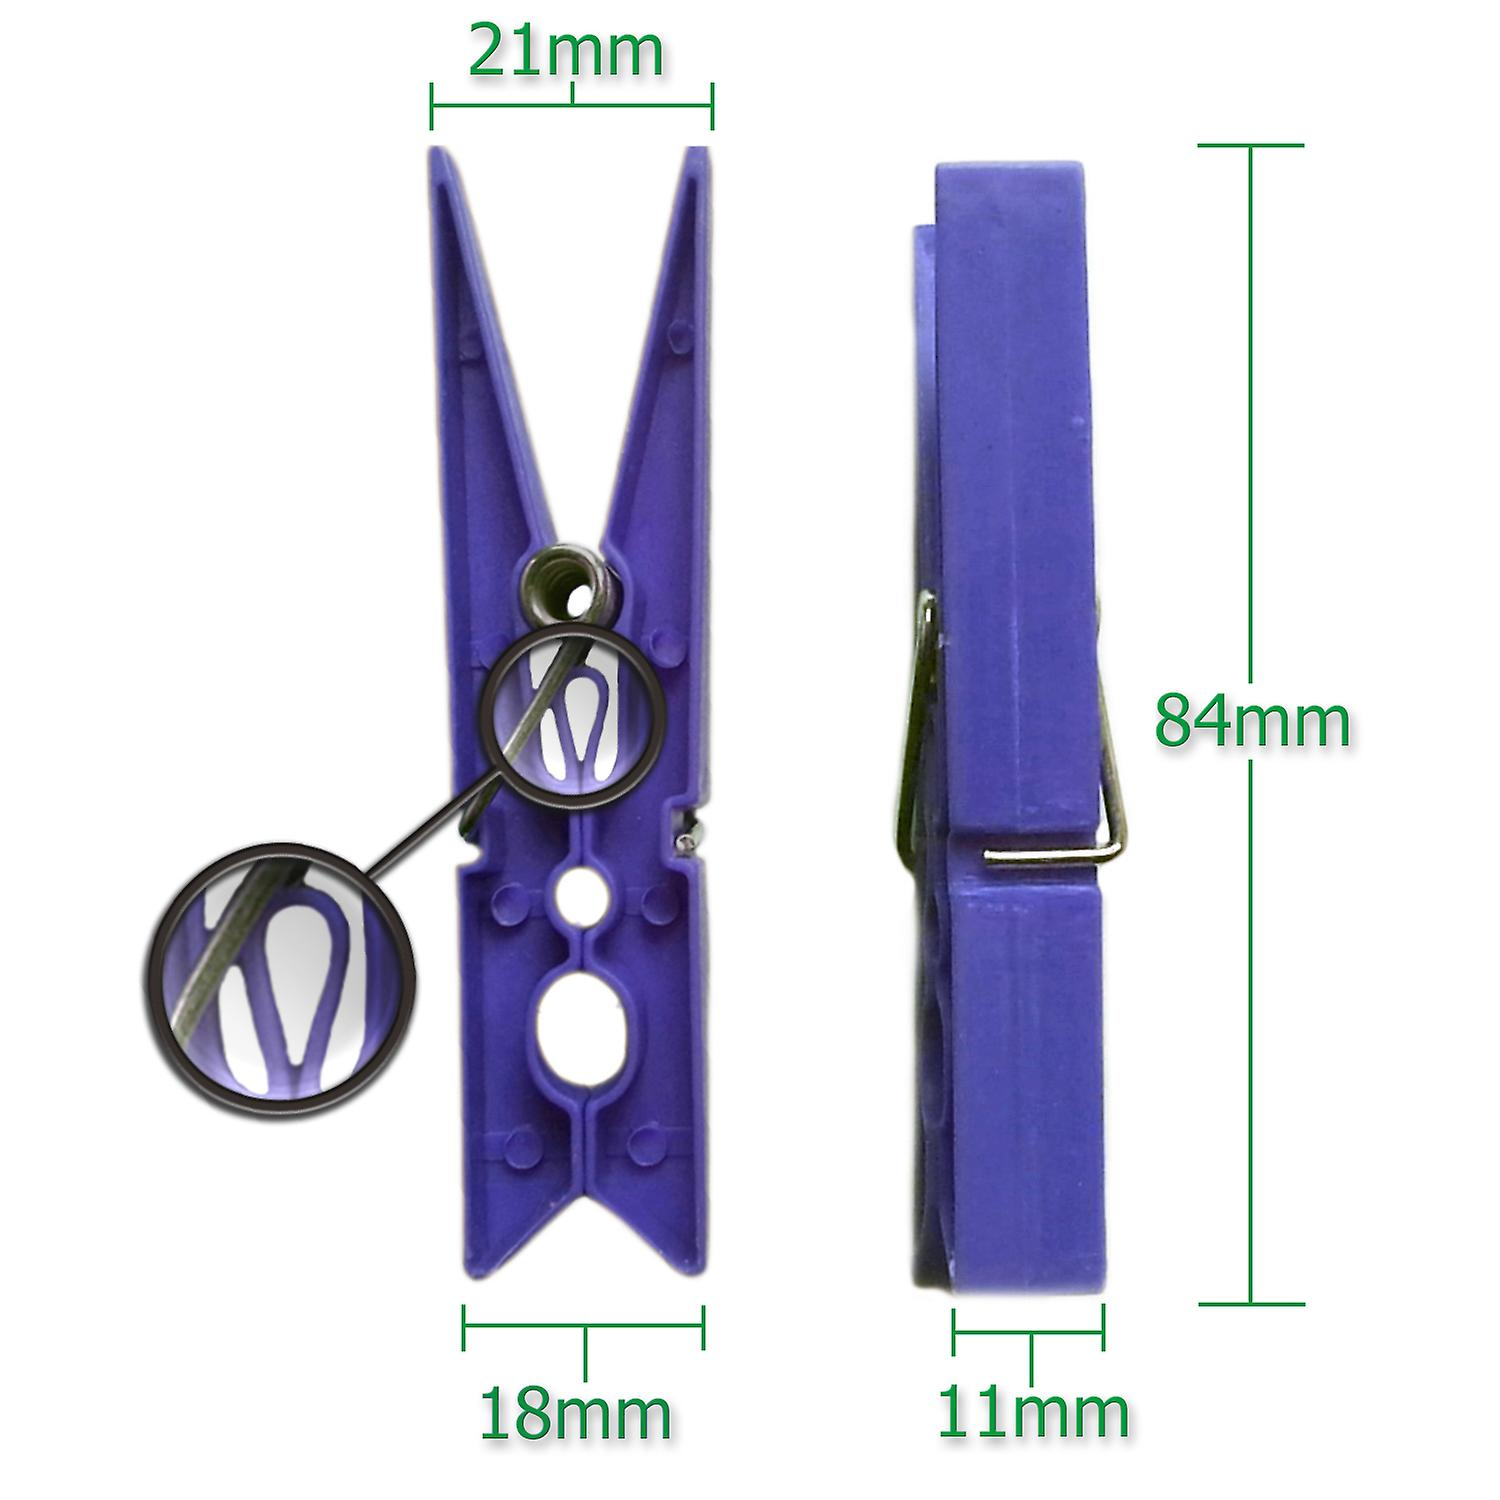 Simply Direct Blue Strong Big Robust Plastic Clothes Washing Line Pegs/Clips - 8.5cm Long - Also Useful for Arts and Crafts